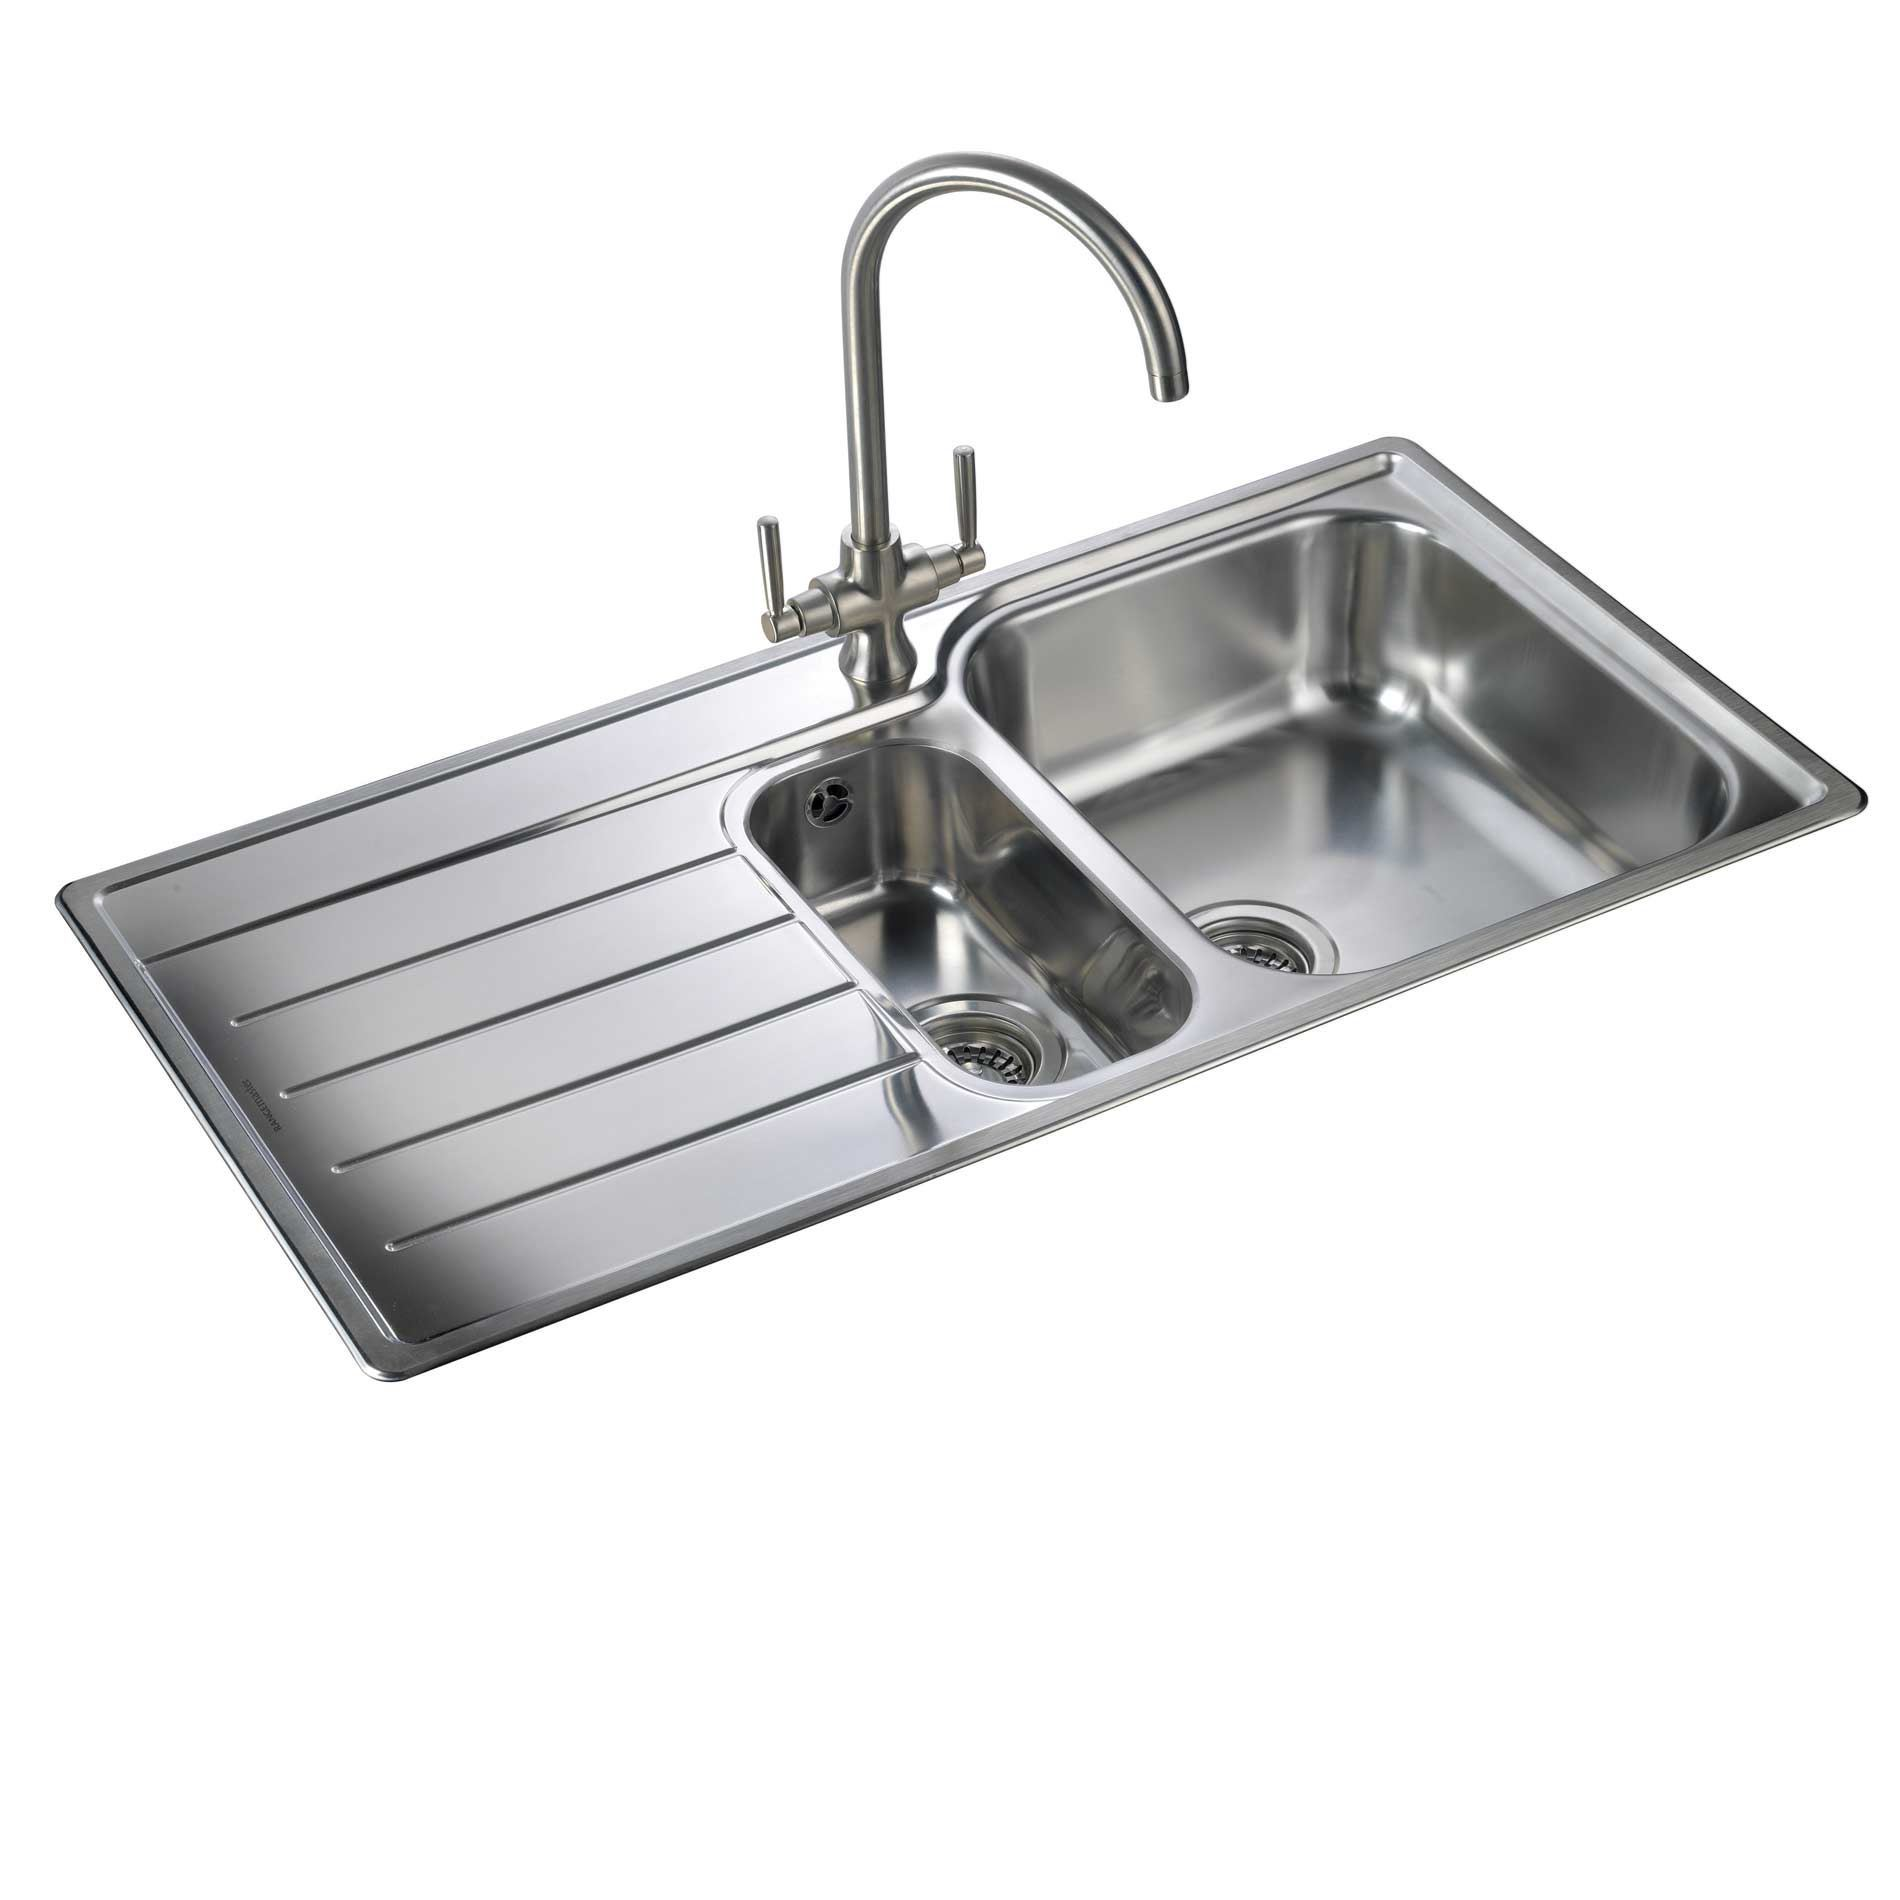 Rangemaster Kitchen Sinks Rangemaster oakland ol9852 stainless steel sink kitchen sinks taps picture of oakland ol9852 stainless steel sink workwithnaturefo